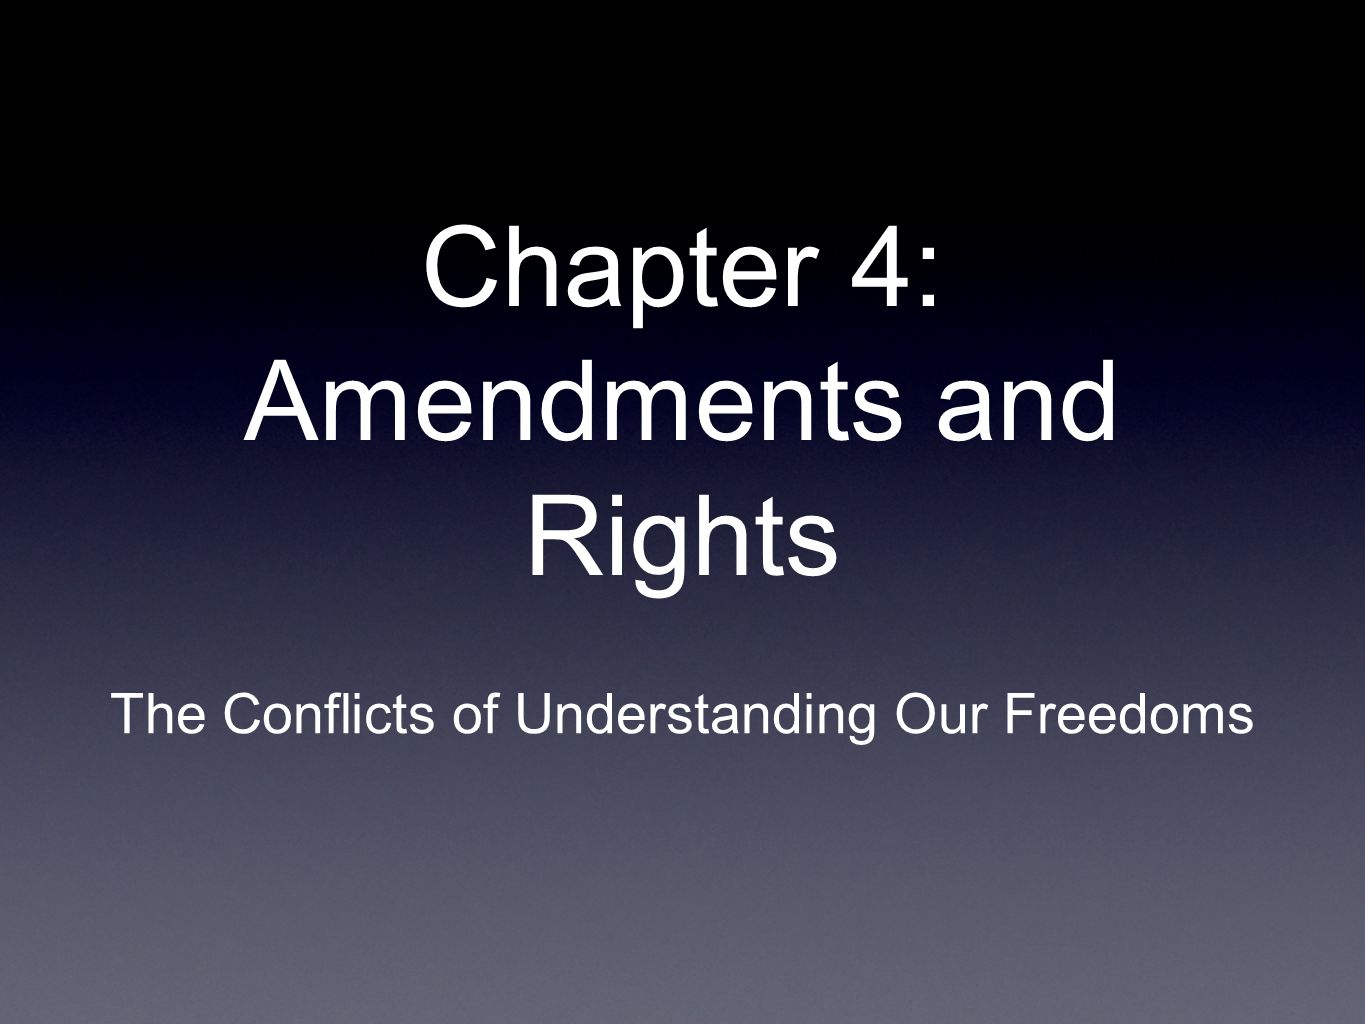 Chapter 4: Amendments and Rights